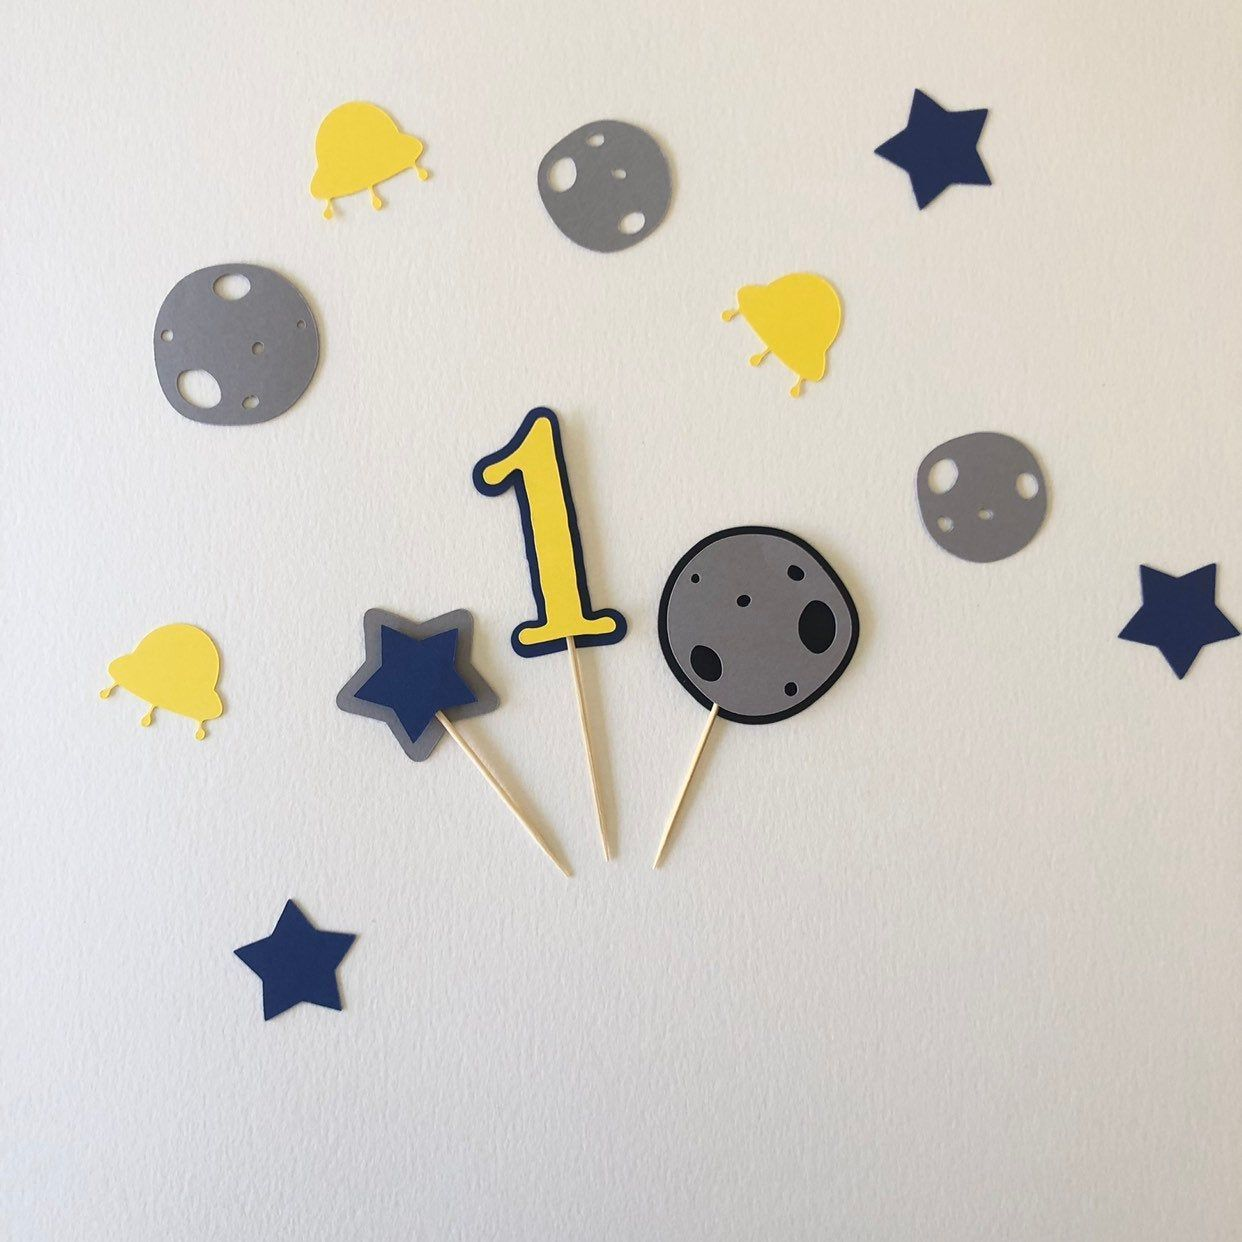 First birthday cupcake toppers, Outer space party decoration, Boys first birthday party decor, Boys first birthday decor, Star planet decor #outerspaceparty First birthday cupcake toppers, Outer space party decoration, Boys first birthday party decor, Boys first birthday decor, Star planet decor #outerspaceparty First birthday cupcake toppers, Outer space party decoration, Boys first birthday party decor, Boys first birthday decor, Star planet decor #outerspaceparty First birthday cupcake topper #outerspaceparty